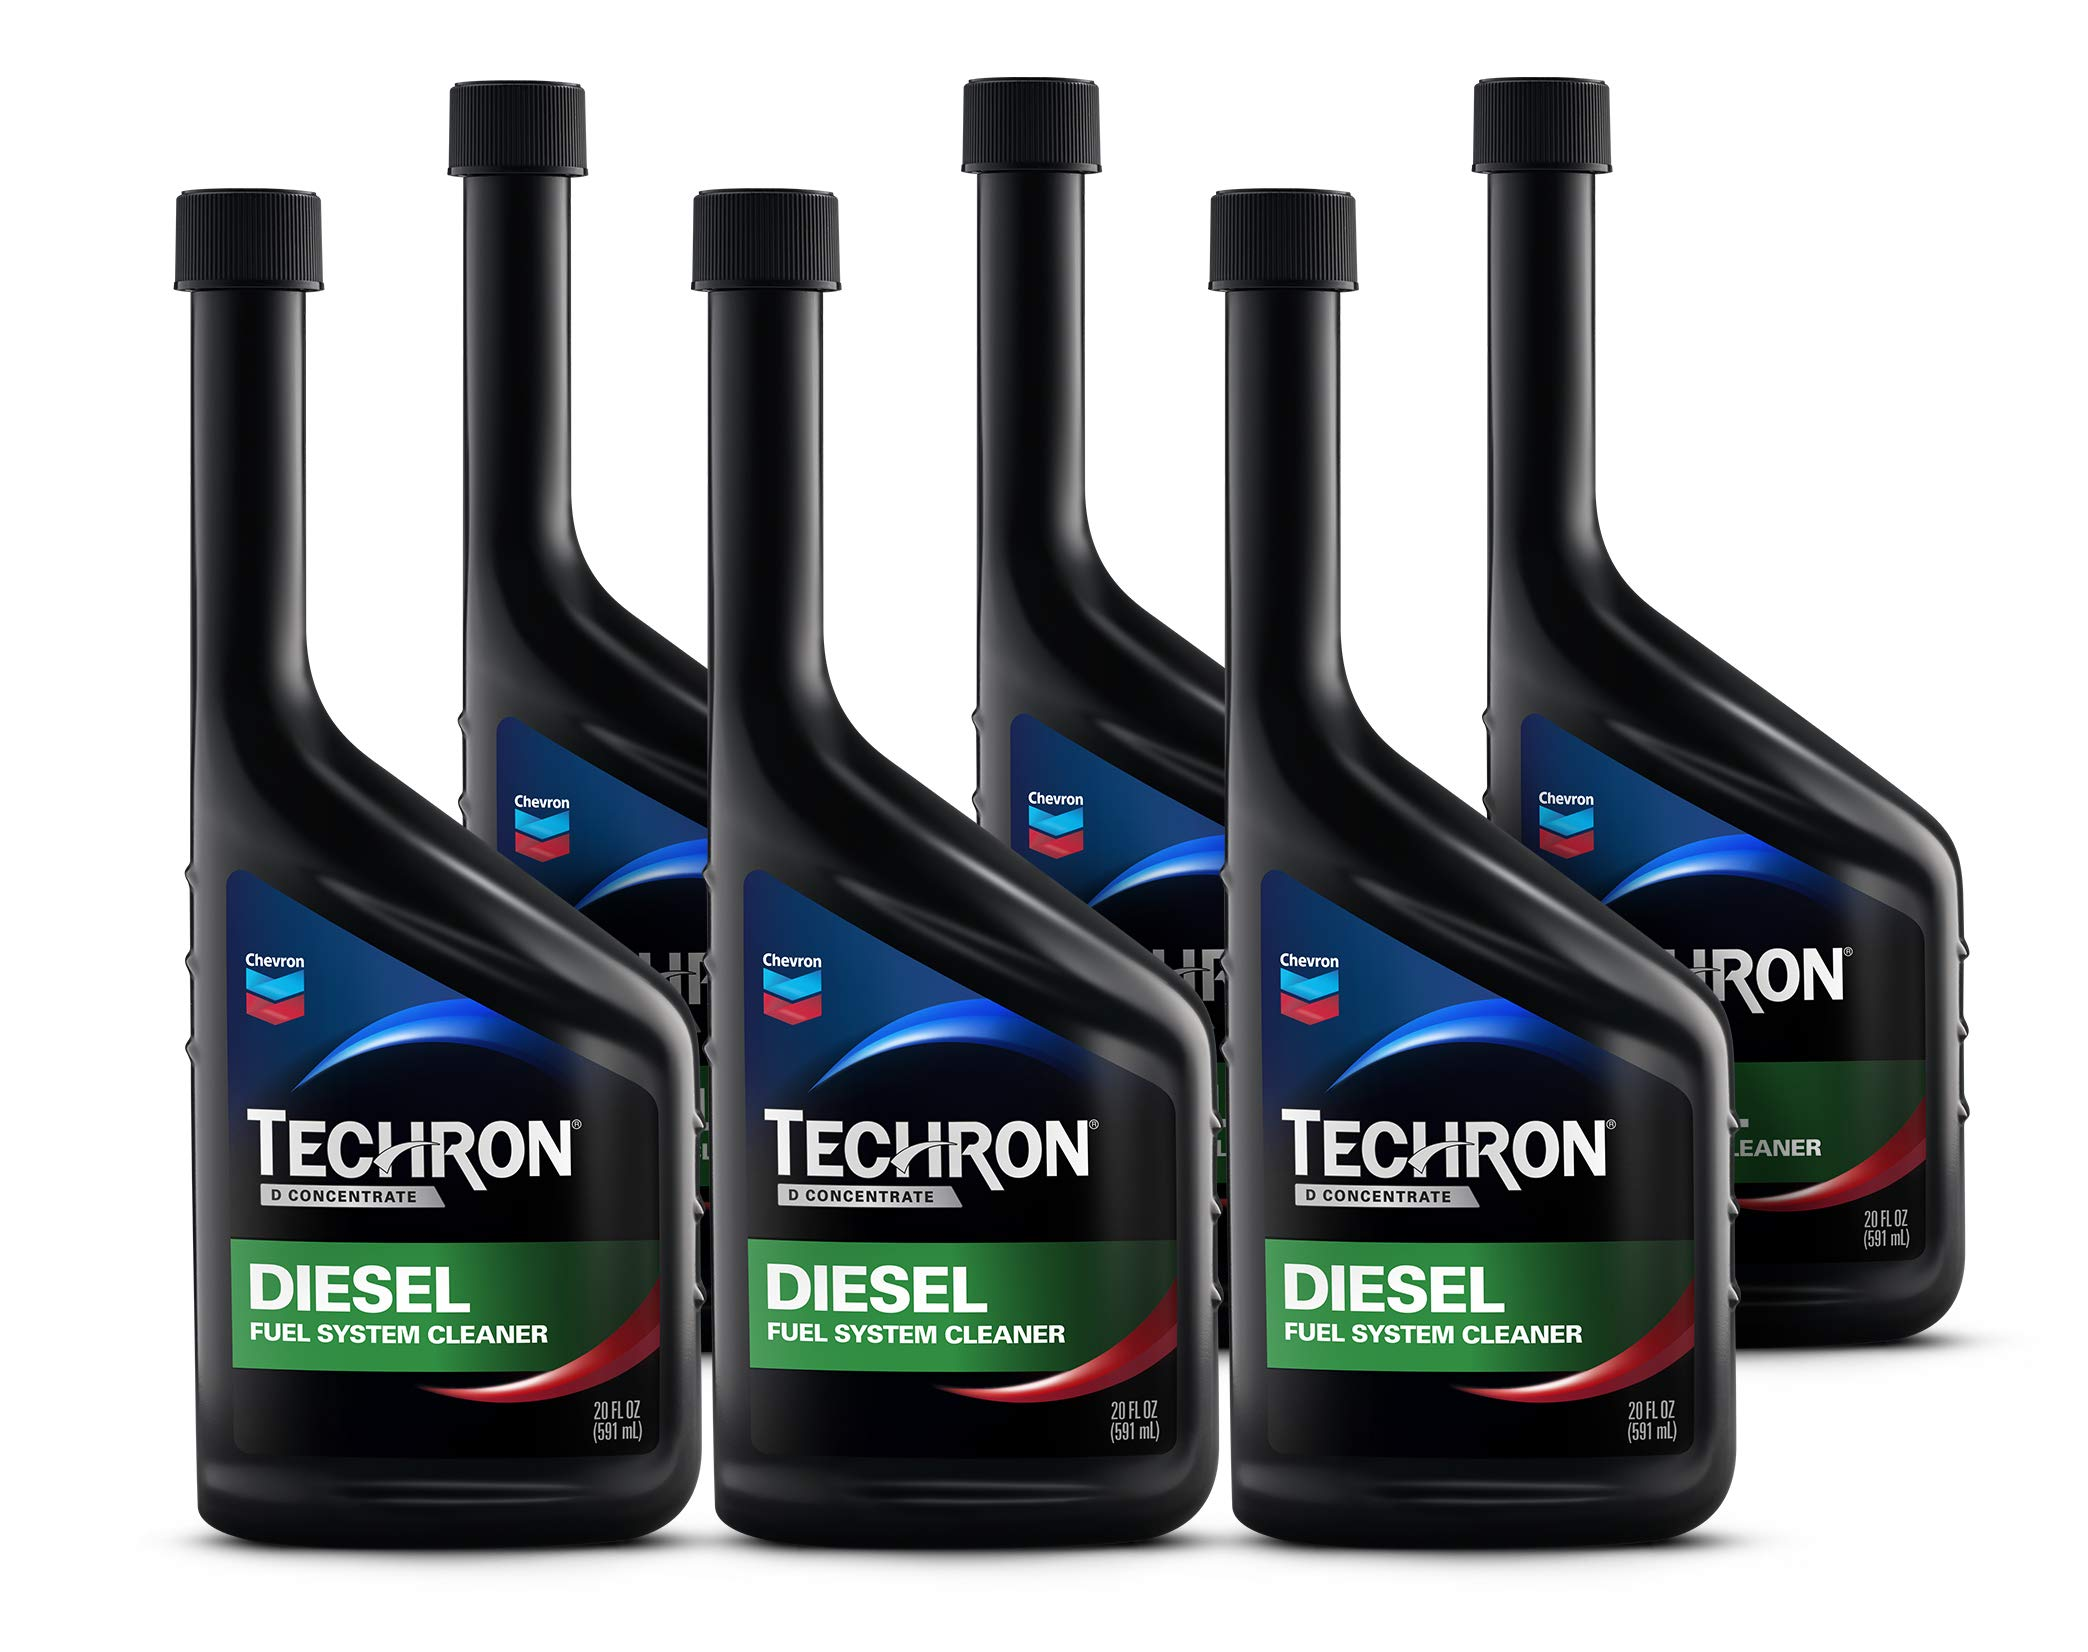 Techron D Concentrate Diesel Fuel System Cleaner, 20 fl. oz., 6 Pack by TECHRON